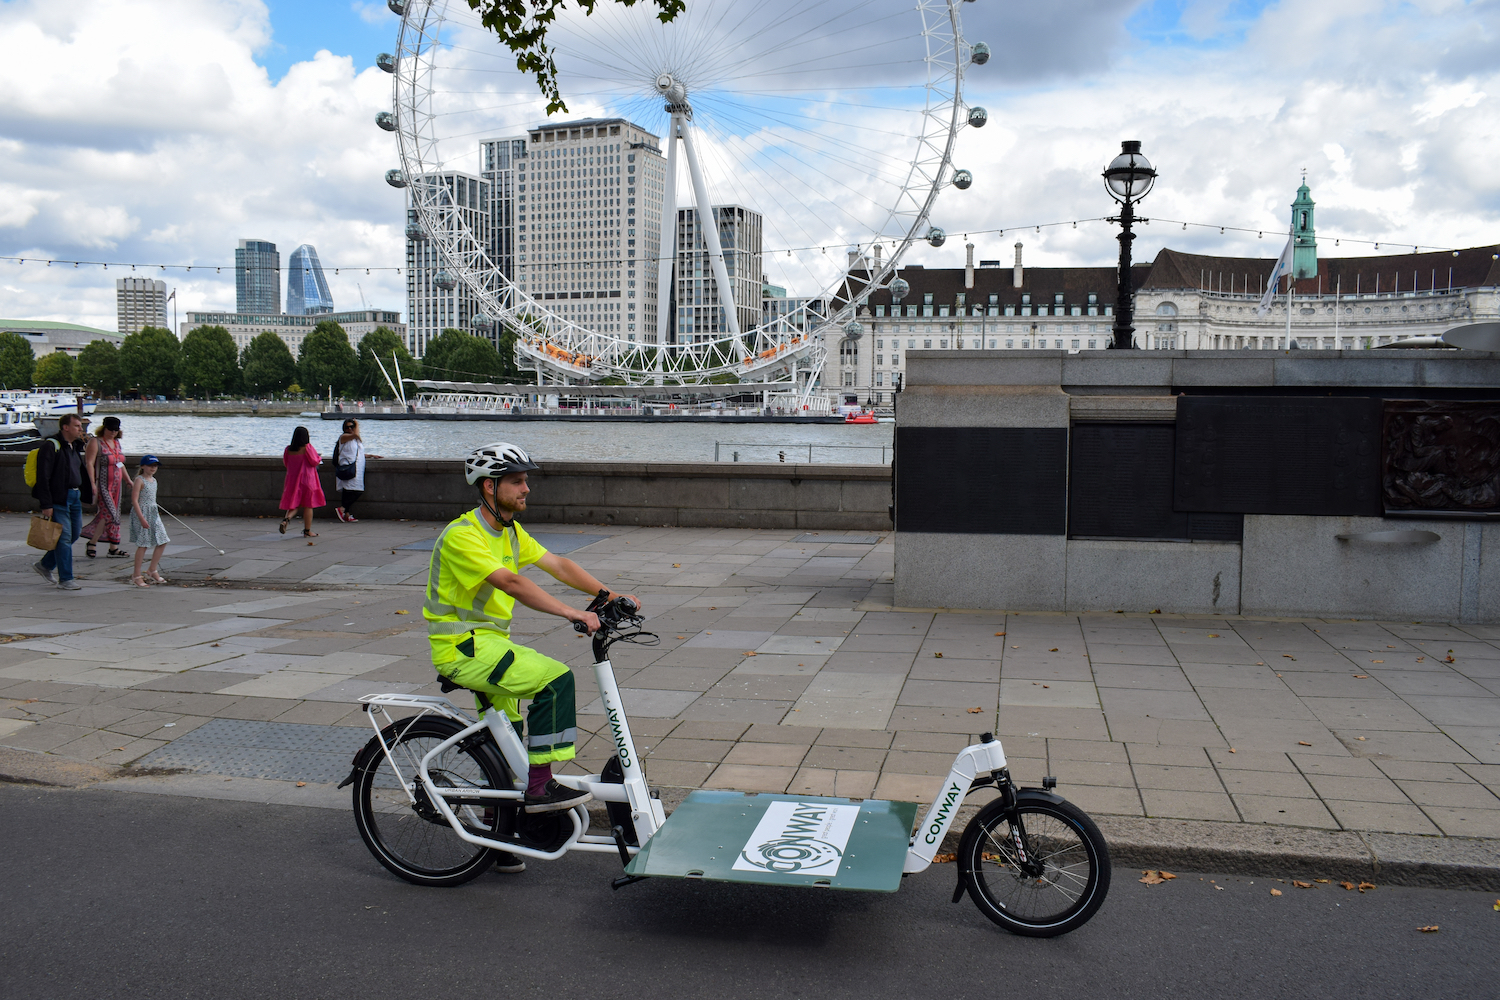 The benefits of eCargo bikes for Construction Companies in inner cities